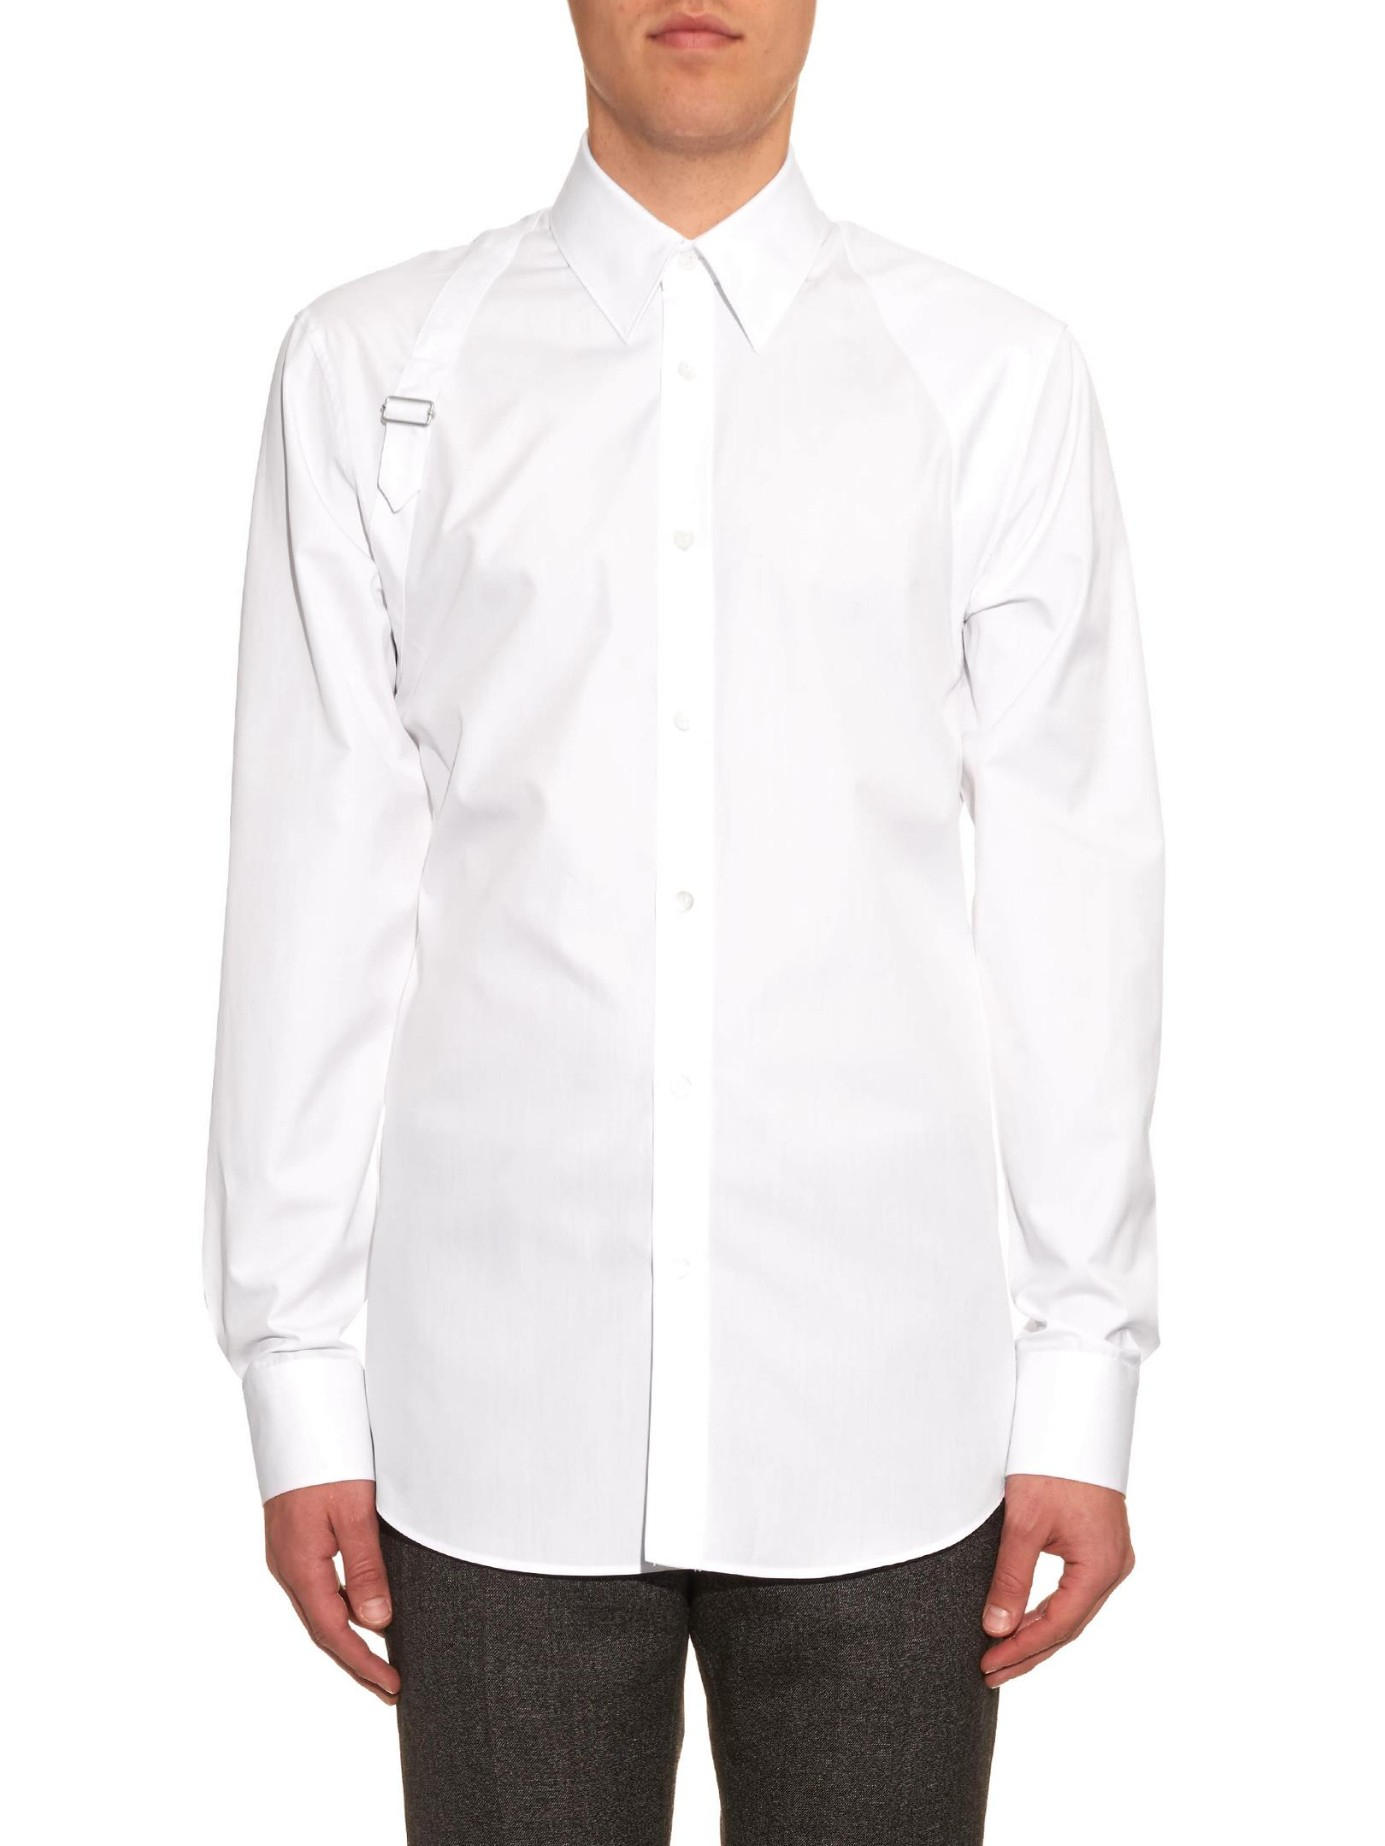 Top Quality Buy Cheap Visit Cotton-poplin Shirt - White Alexander McQueen WW6uHMn85